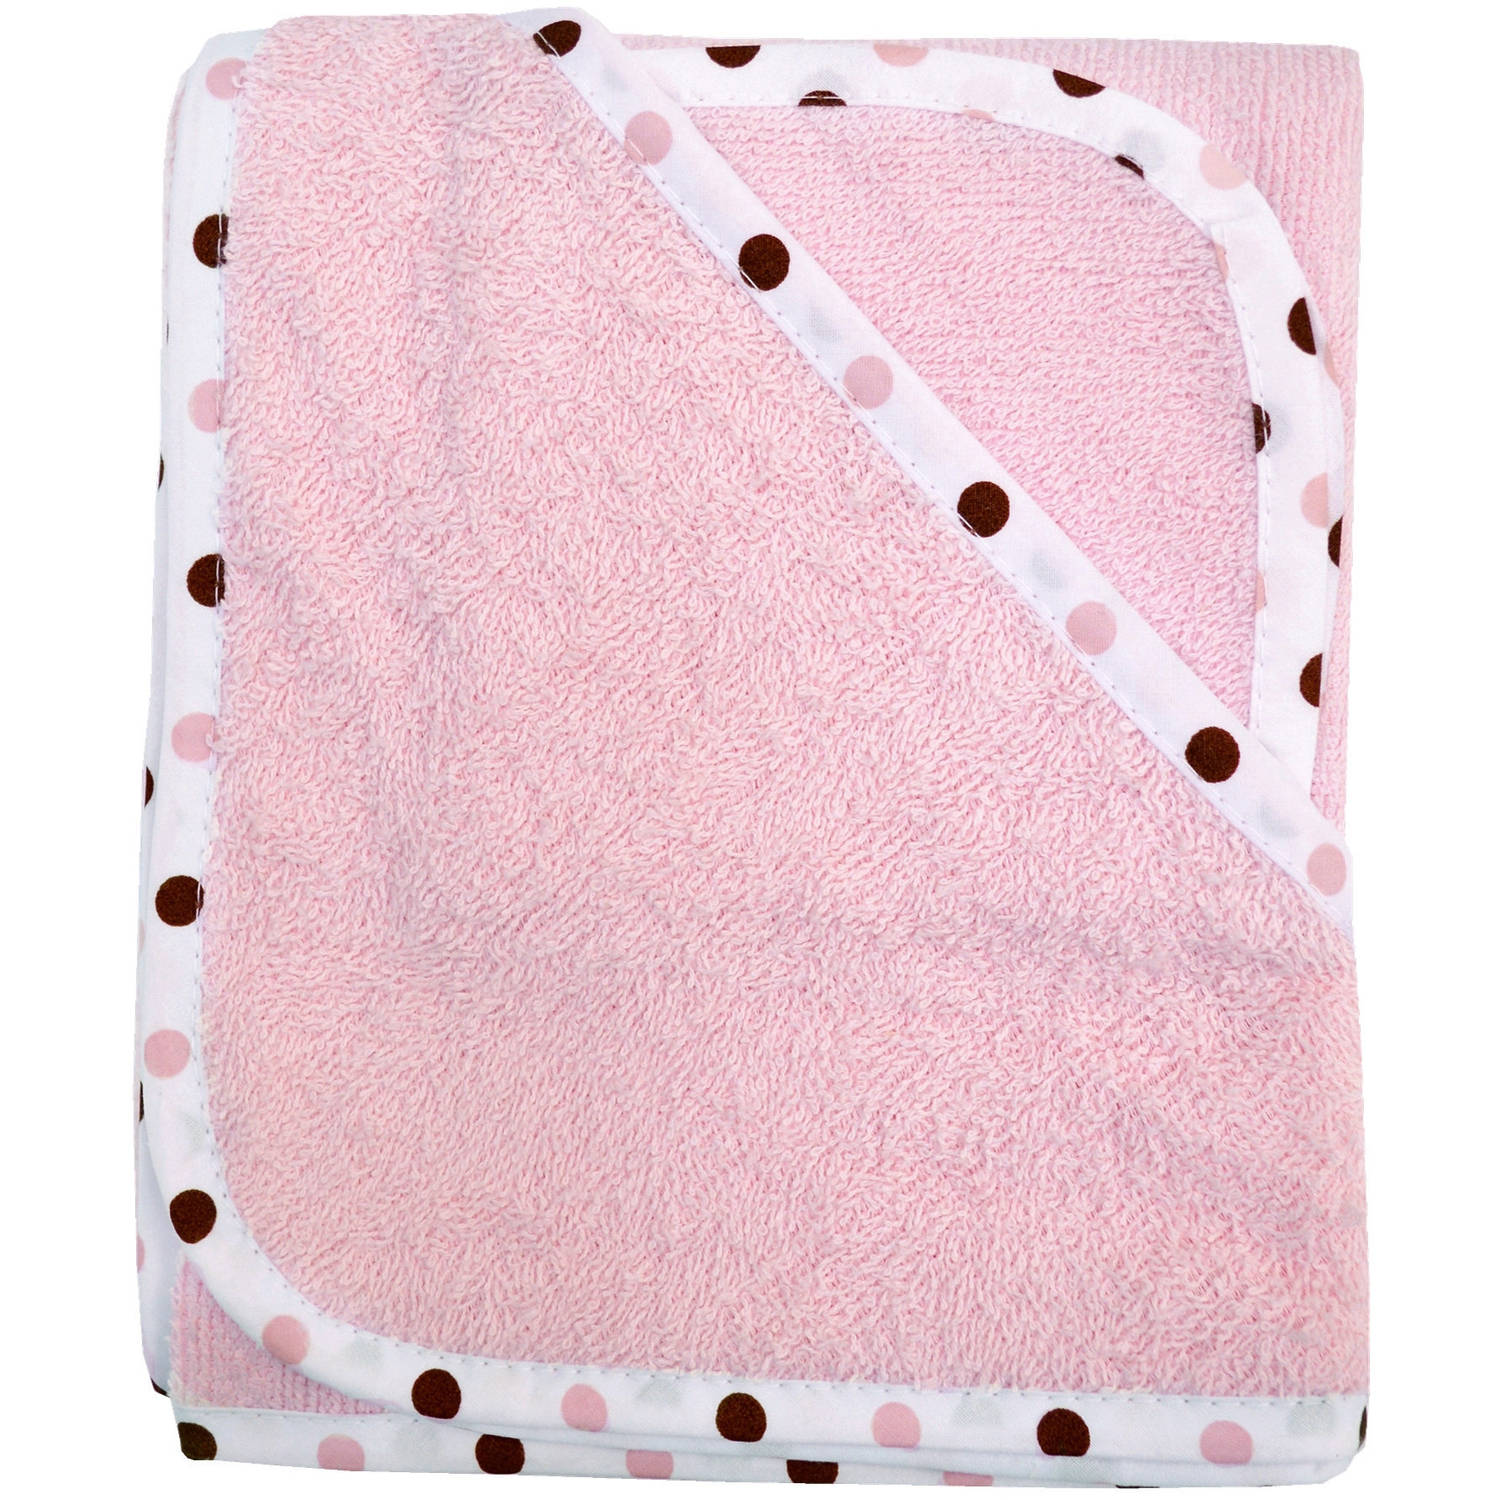 TL Care 100 Percent Organic Cotton Terry Hooded Towel Set, Pink